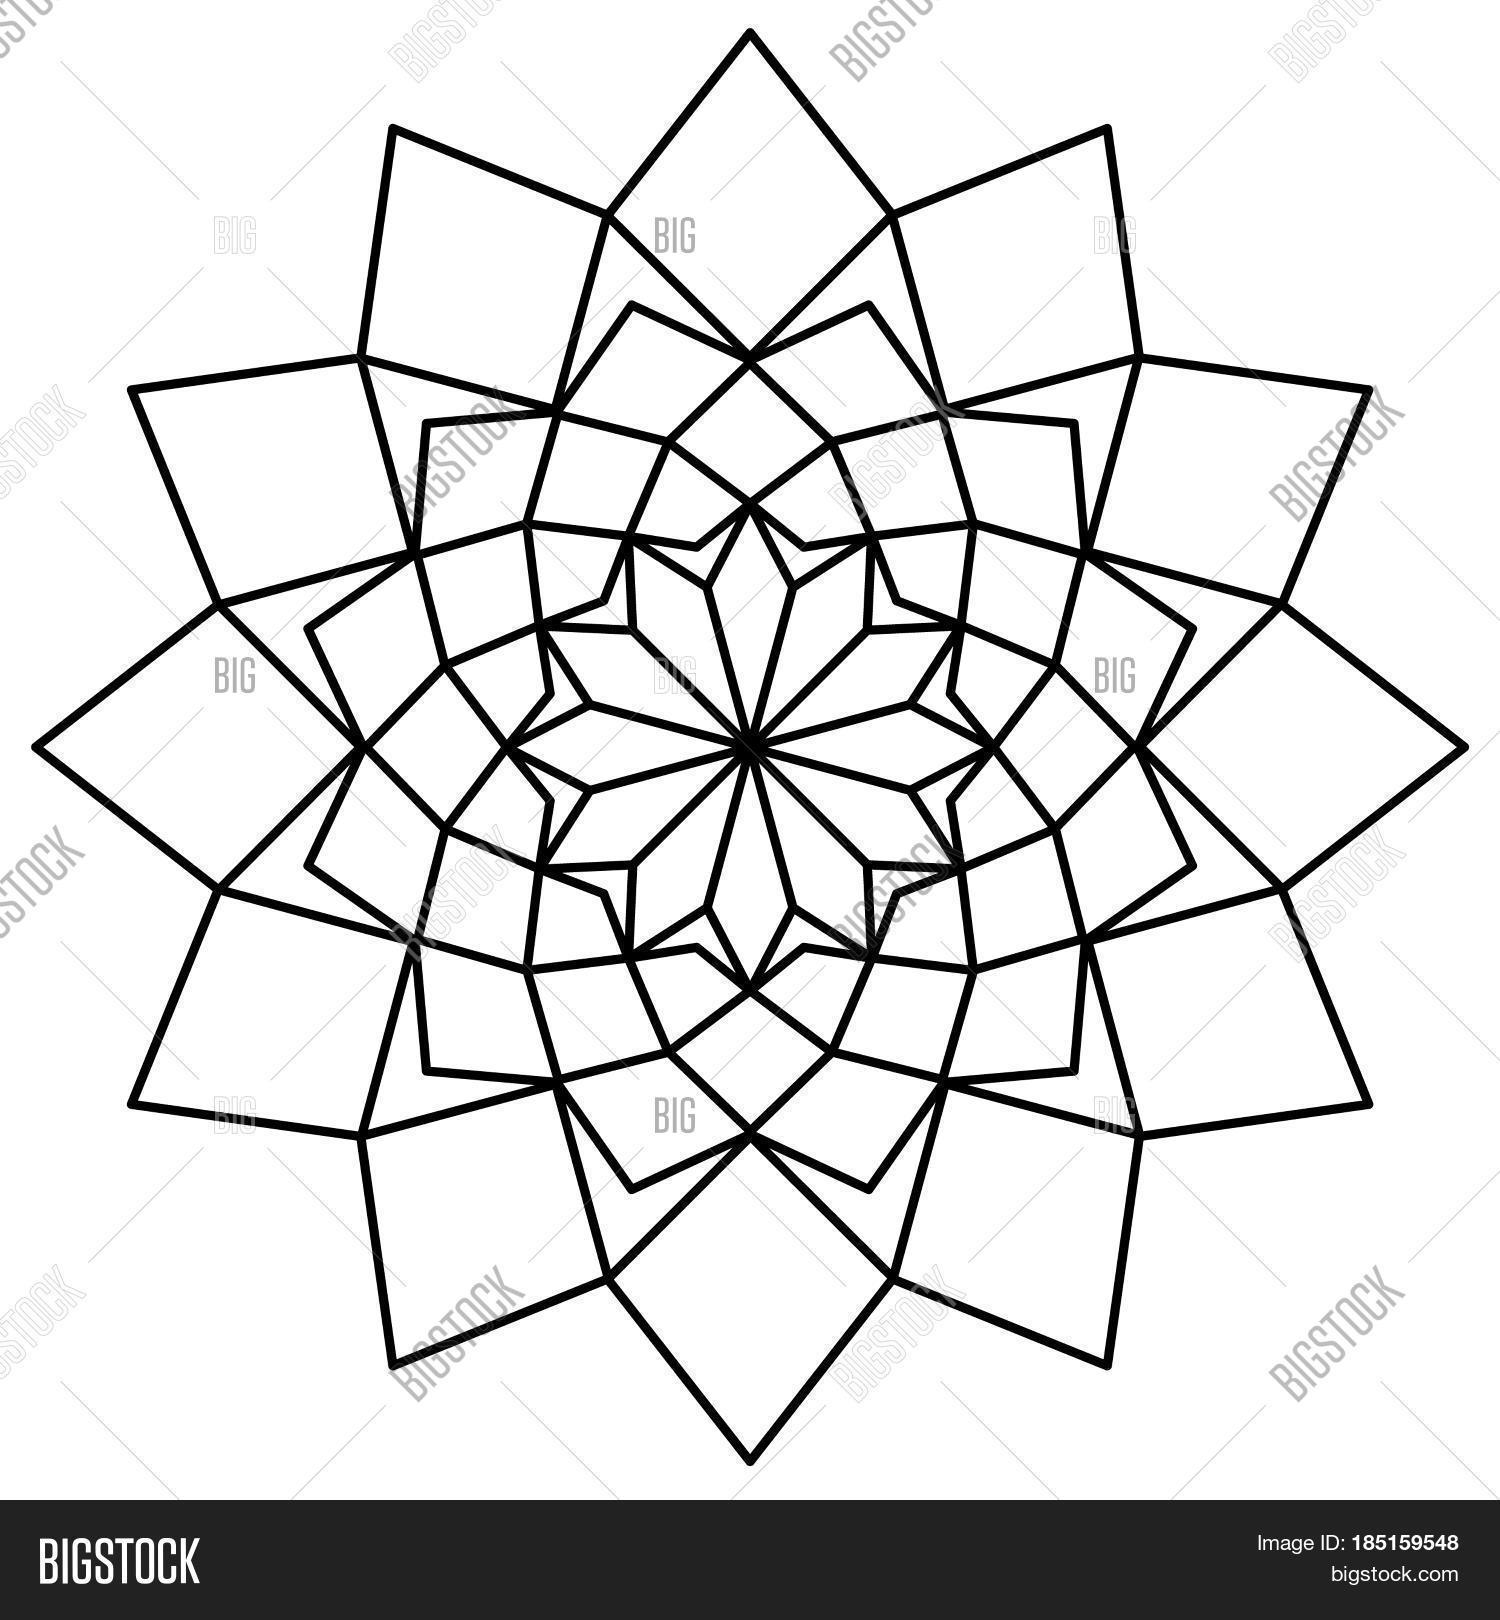 Simple Mandala Black Image & Photo (Free Trial) | Bigstock